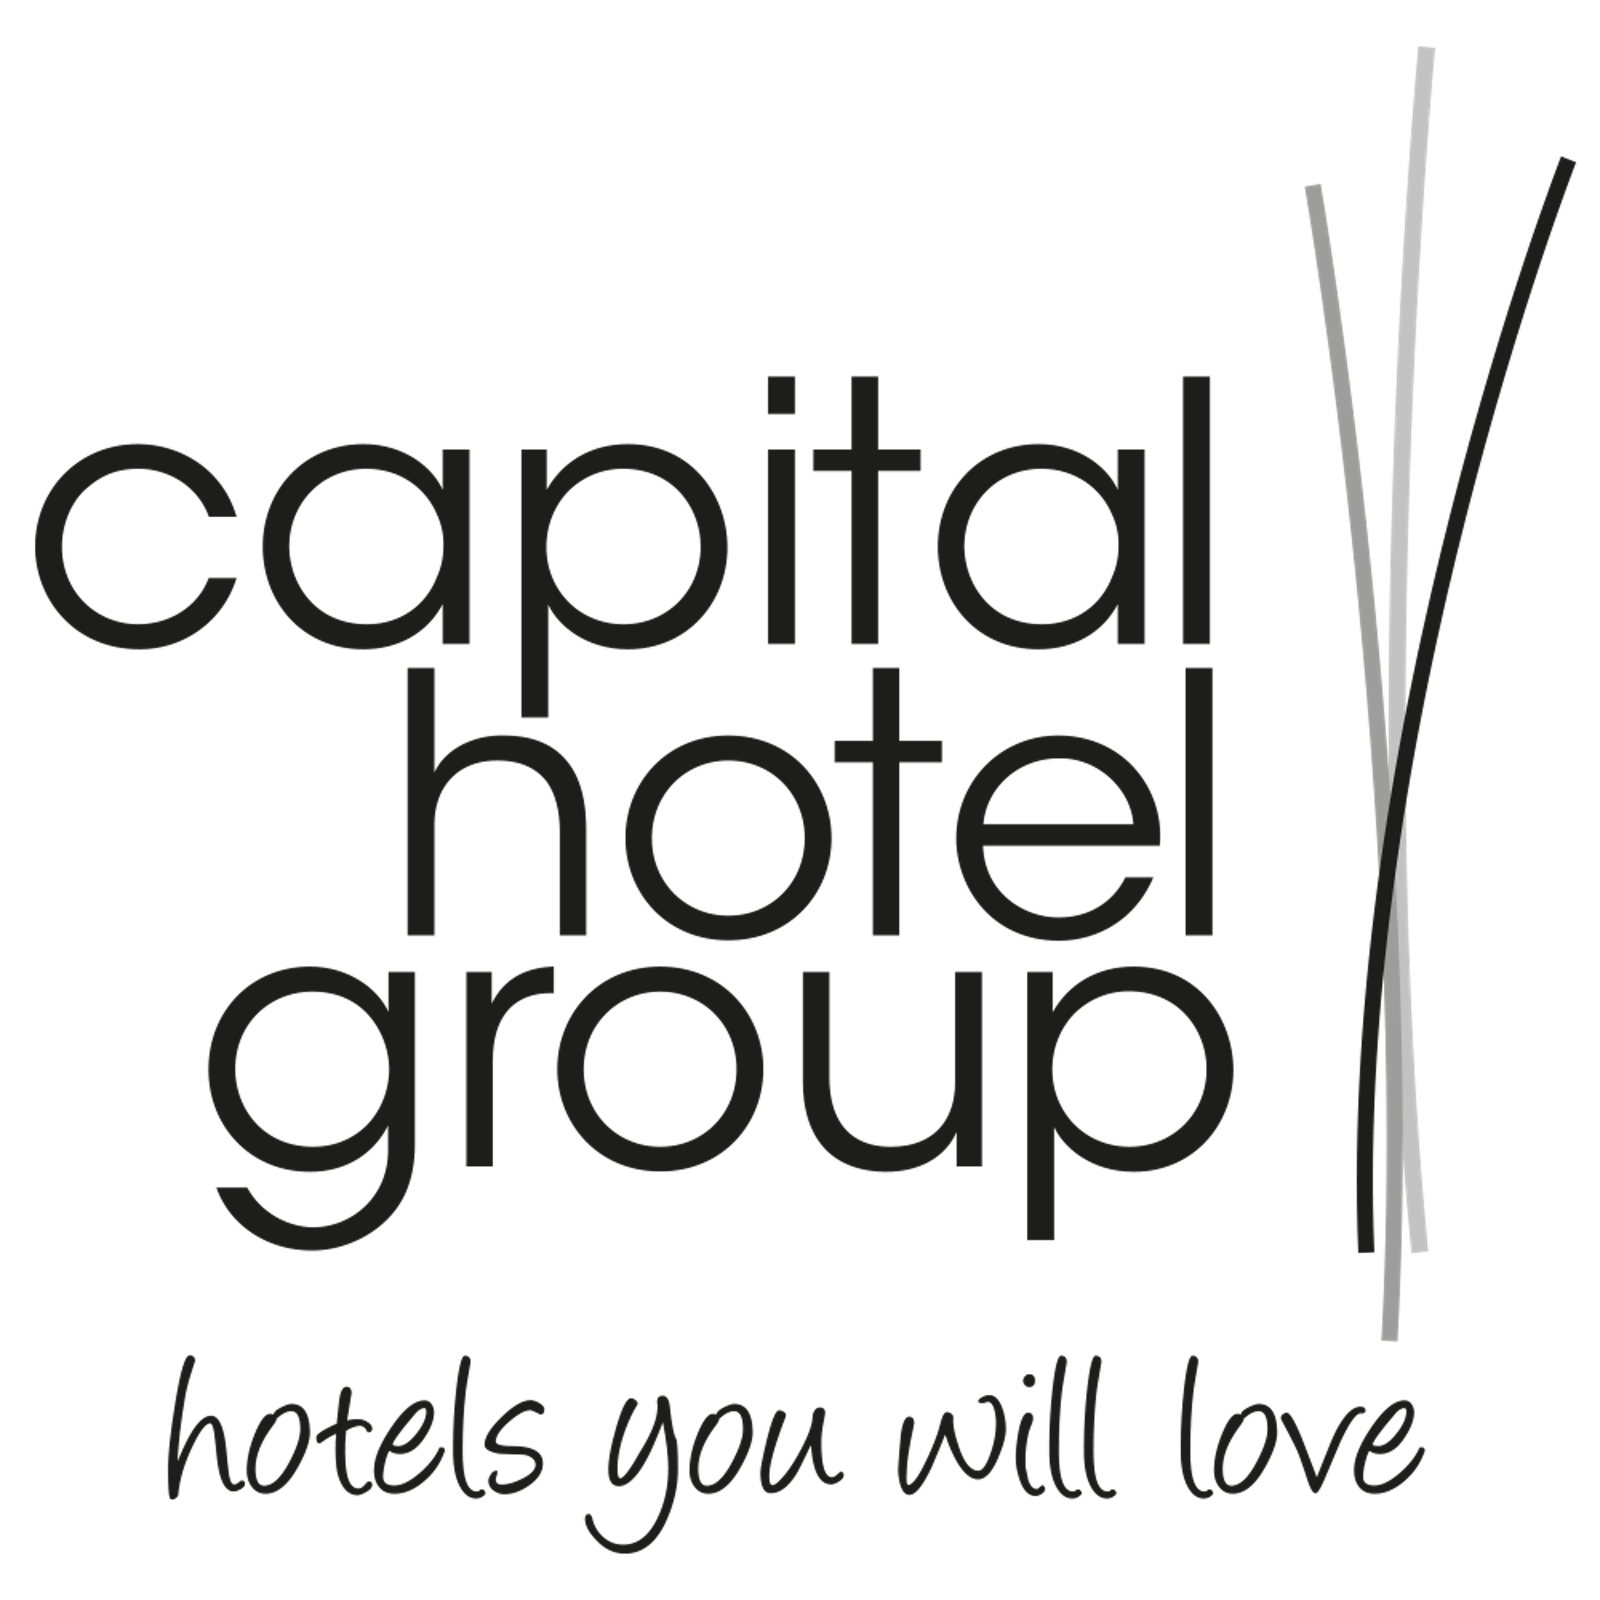 Caoital hotel Group Logo shade